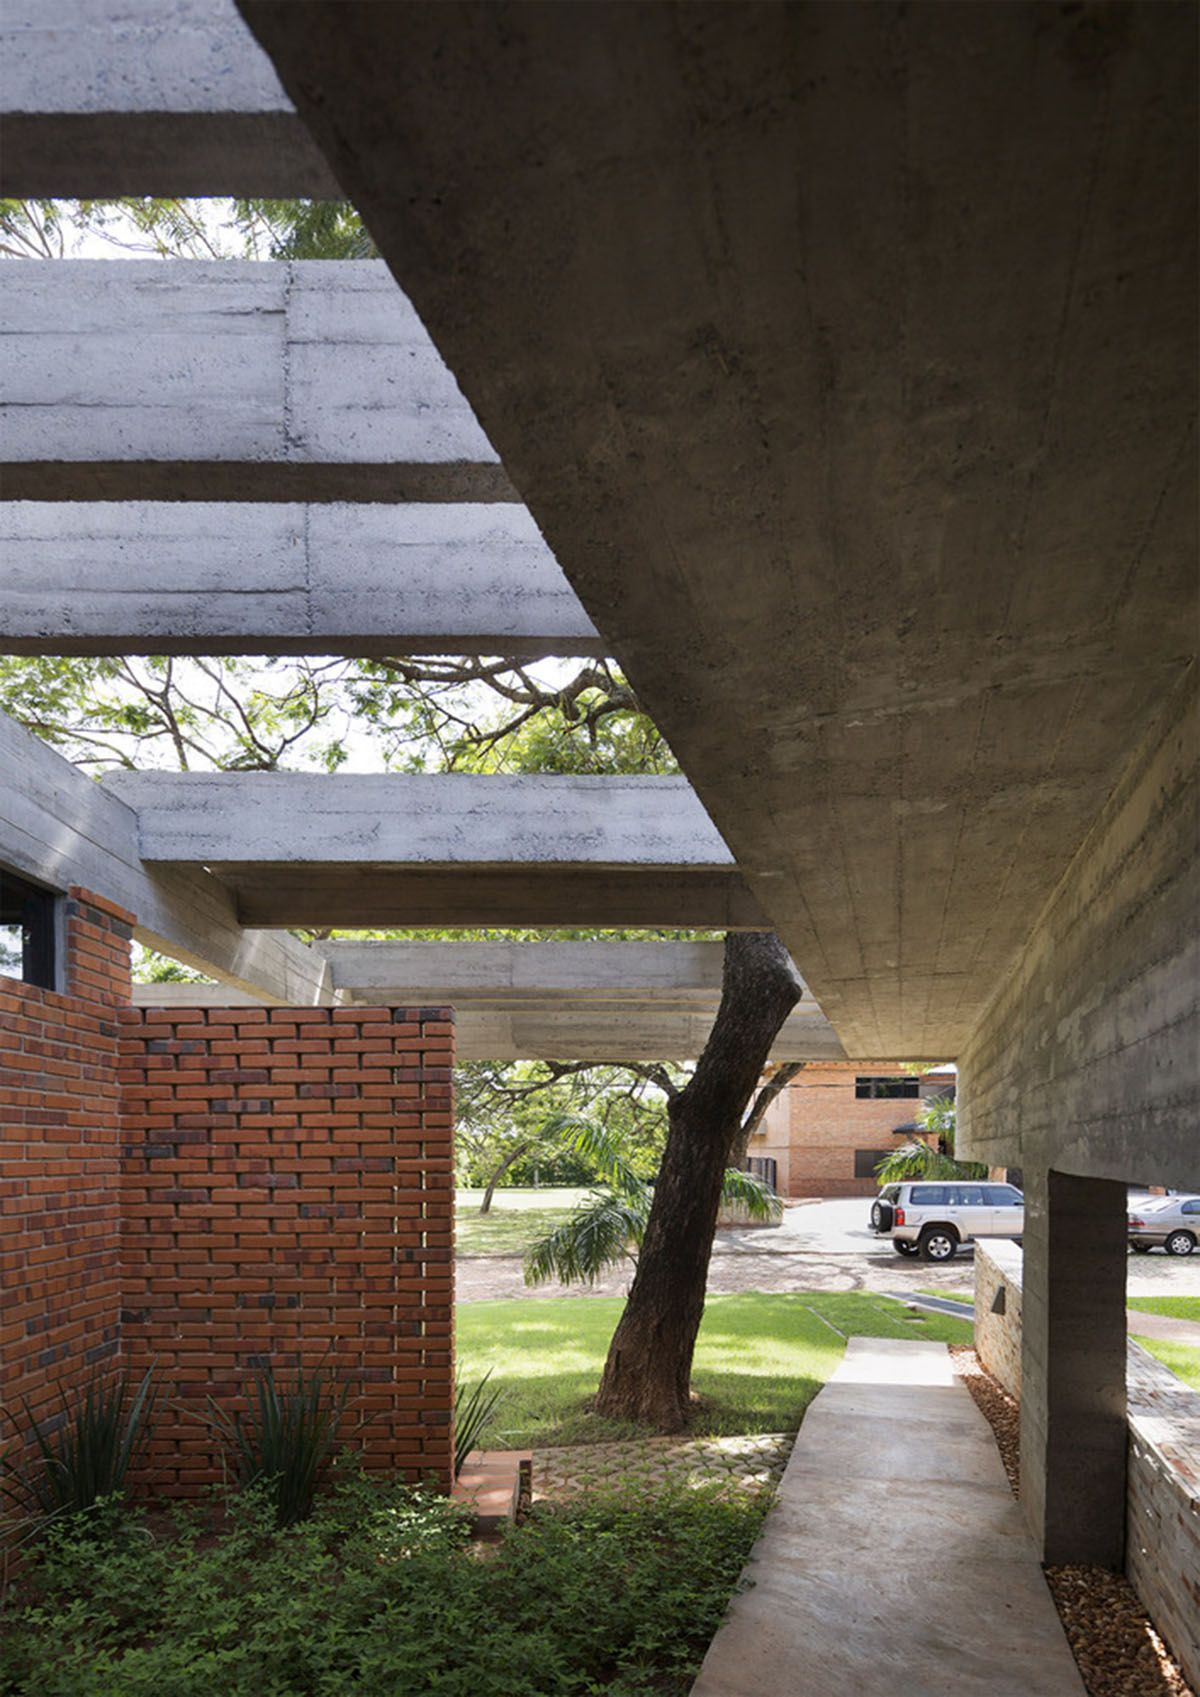 Concrete Roof Slabs And Surfaces Freely Fly Over This Brick House In Paraguay By Culata Jovai Group Concrete Roof Concrete Houses Facade Architecture